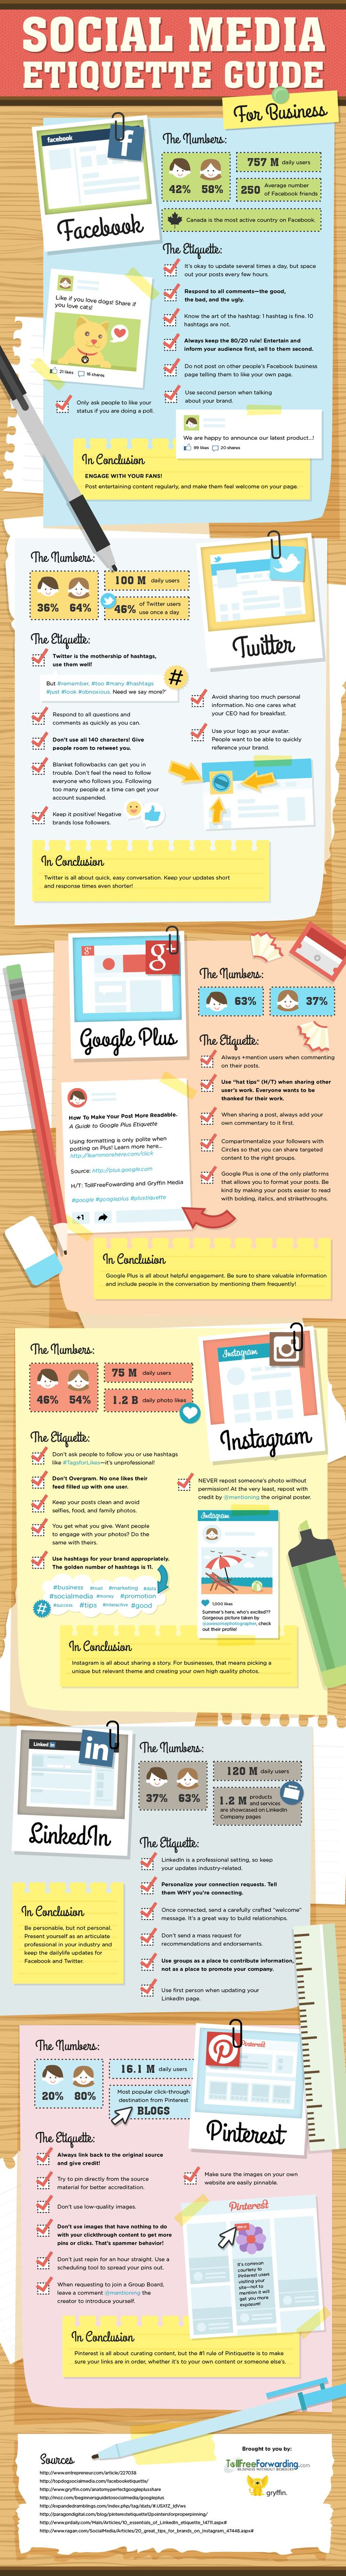 Infographic: Business and real estate guide to social media etiquette for Facebook, Twitter, Google+, Pinterest, Instagram, and LinkedIn